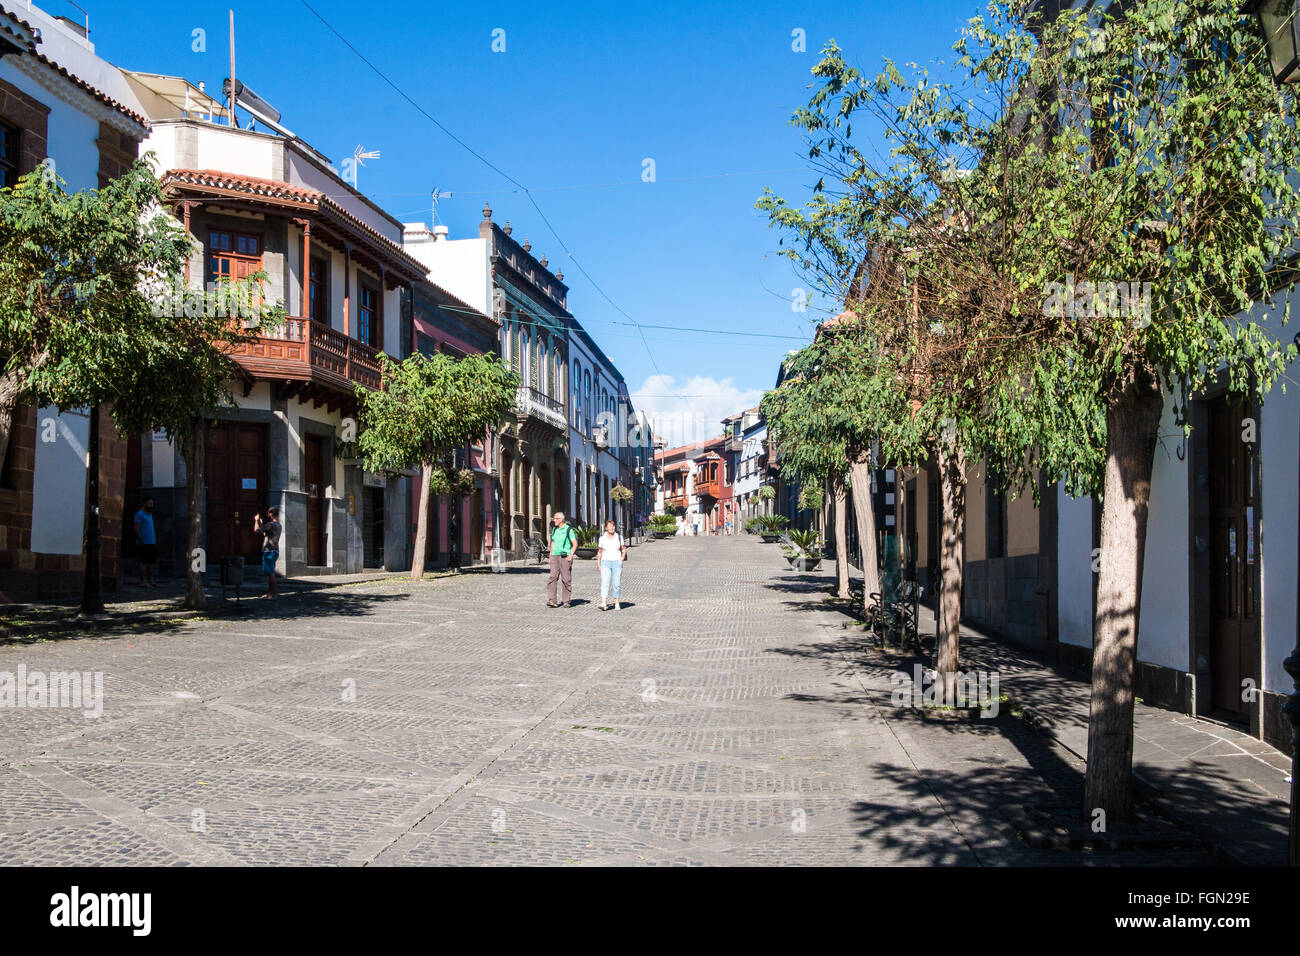 Houses with wooden balconies in the well preserved old  mountain town of Teror, Gran Canaria, Spain, Europe Stock Photo